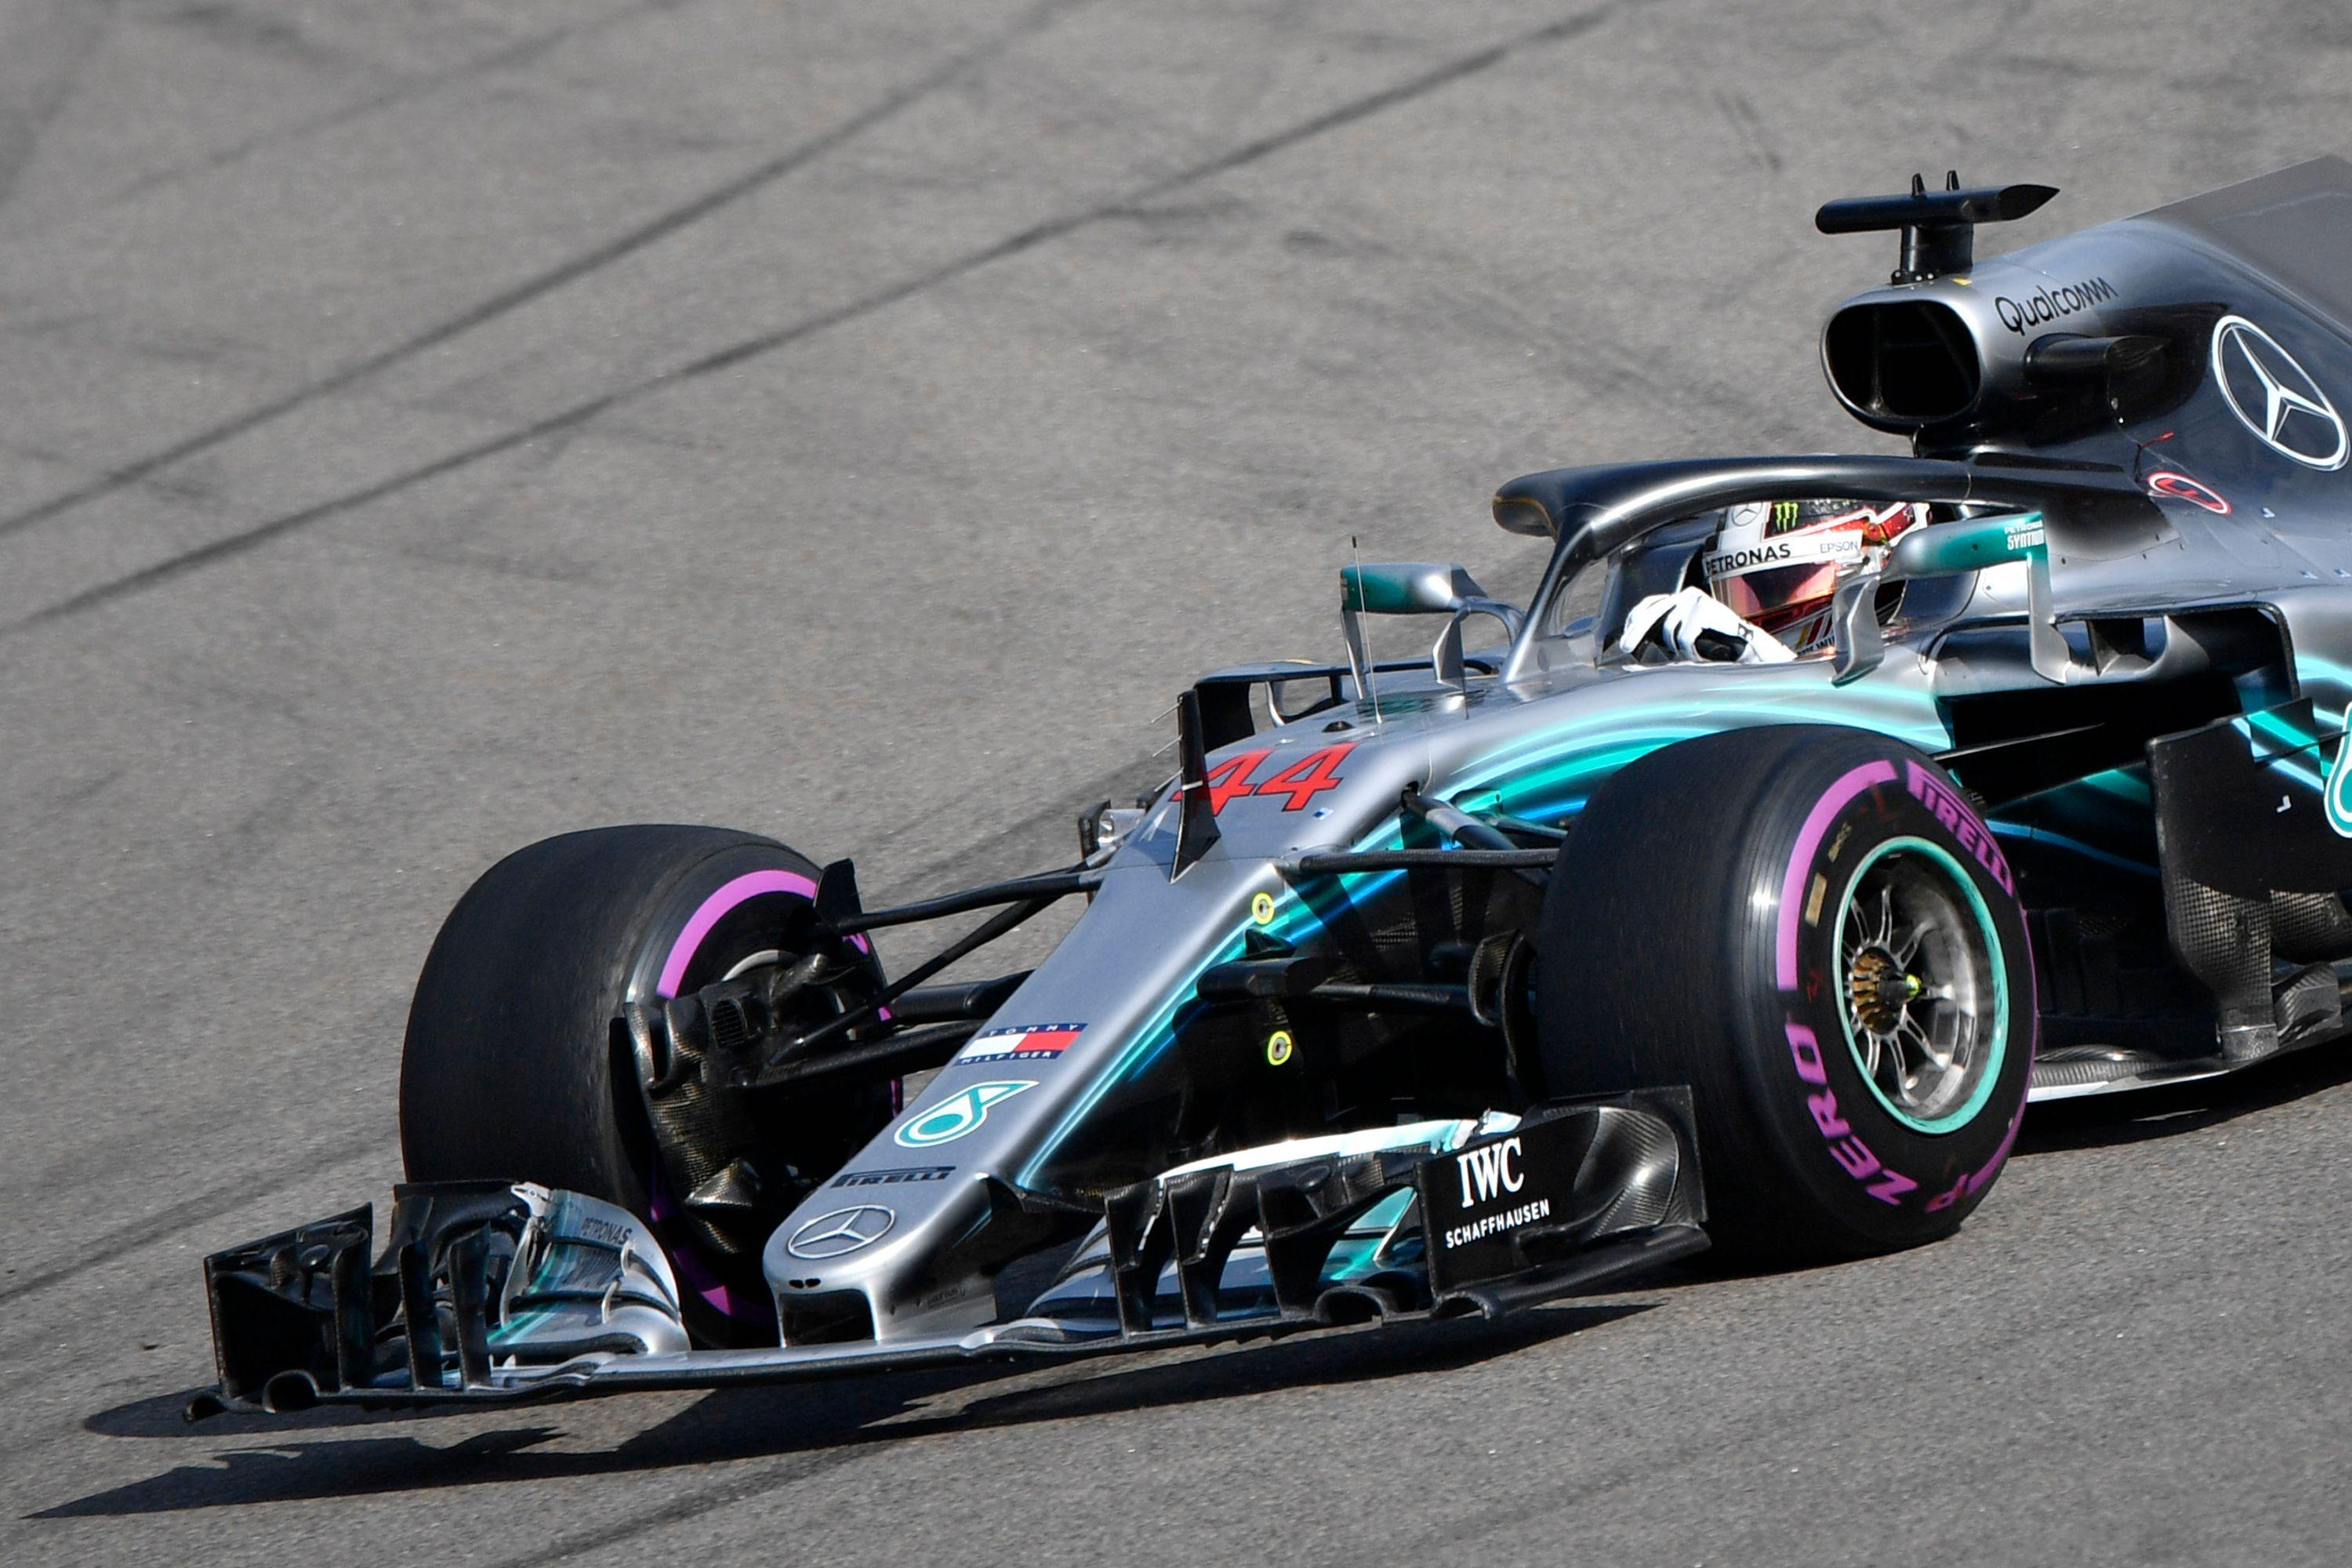 Lewis Hamilton won the Russian Grand Prix to extend his lead over Sebastian Vettel to 50 points